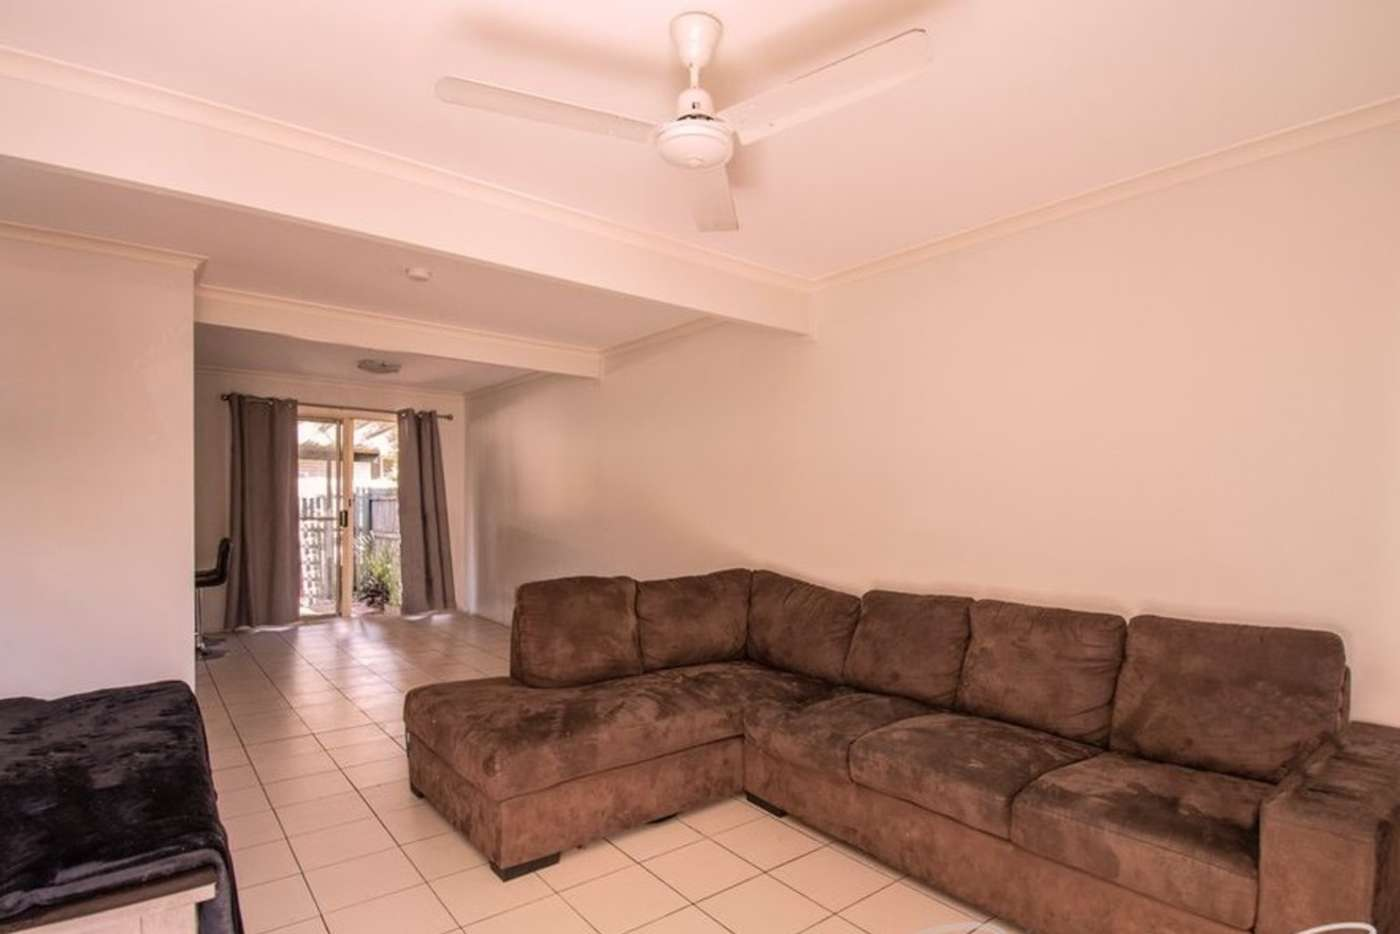 Sixth view of Homely house listing, 19/110 Johnson Rd, Hillcrest QLD 4118